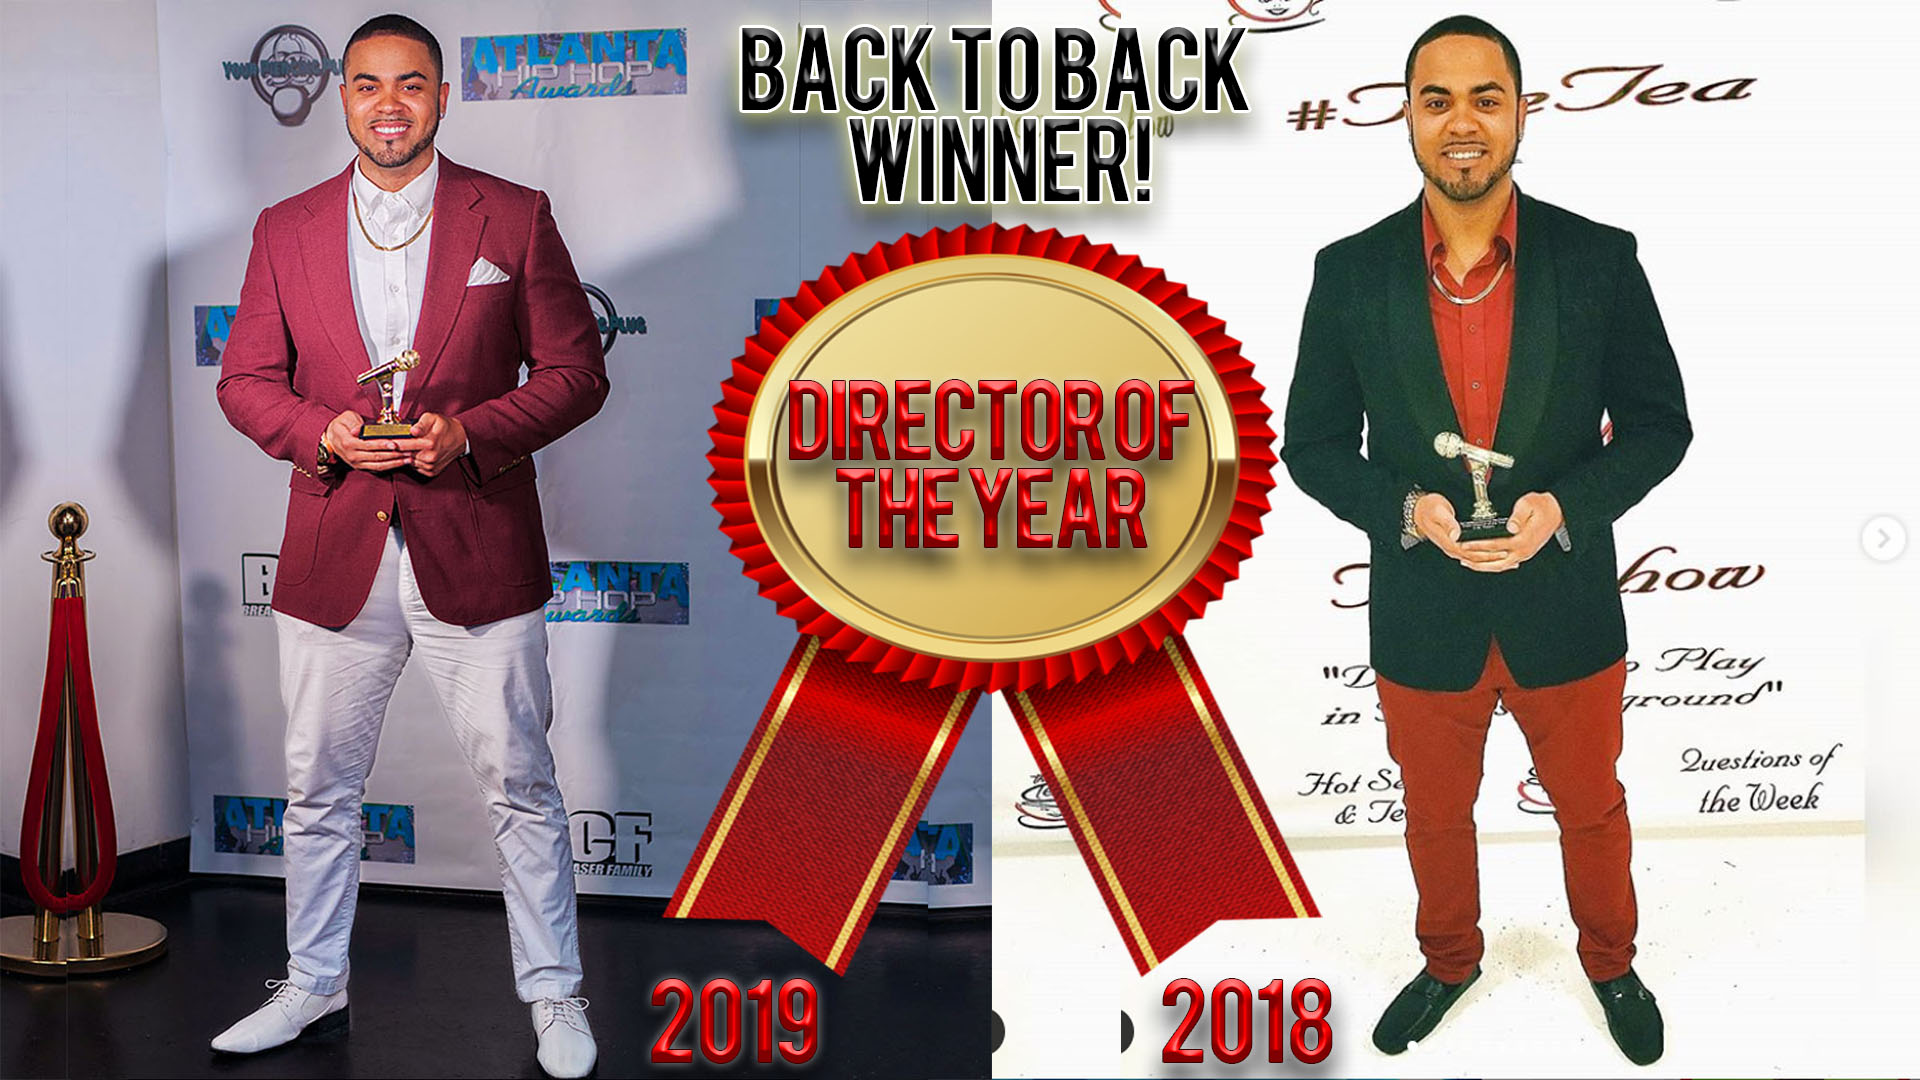 "We are incredibly grateful to have been awarded ""Director of the Year"" back to back for 2019 & 2018! 🏆 Thank you Atlanta Hip Hop Awards for recognizing our hard work & determination. We are dedicated to creating the highest quality content for our clients and are now even more inspired to go bigger! Onwards & Upwards! #AlphaMaleVisuals  See the work that got us these awards  here"